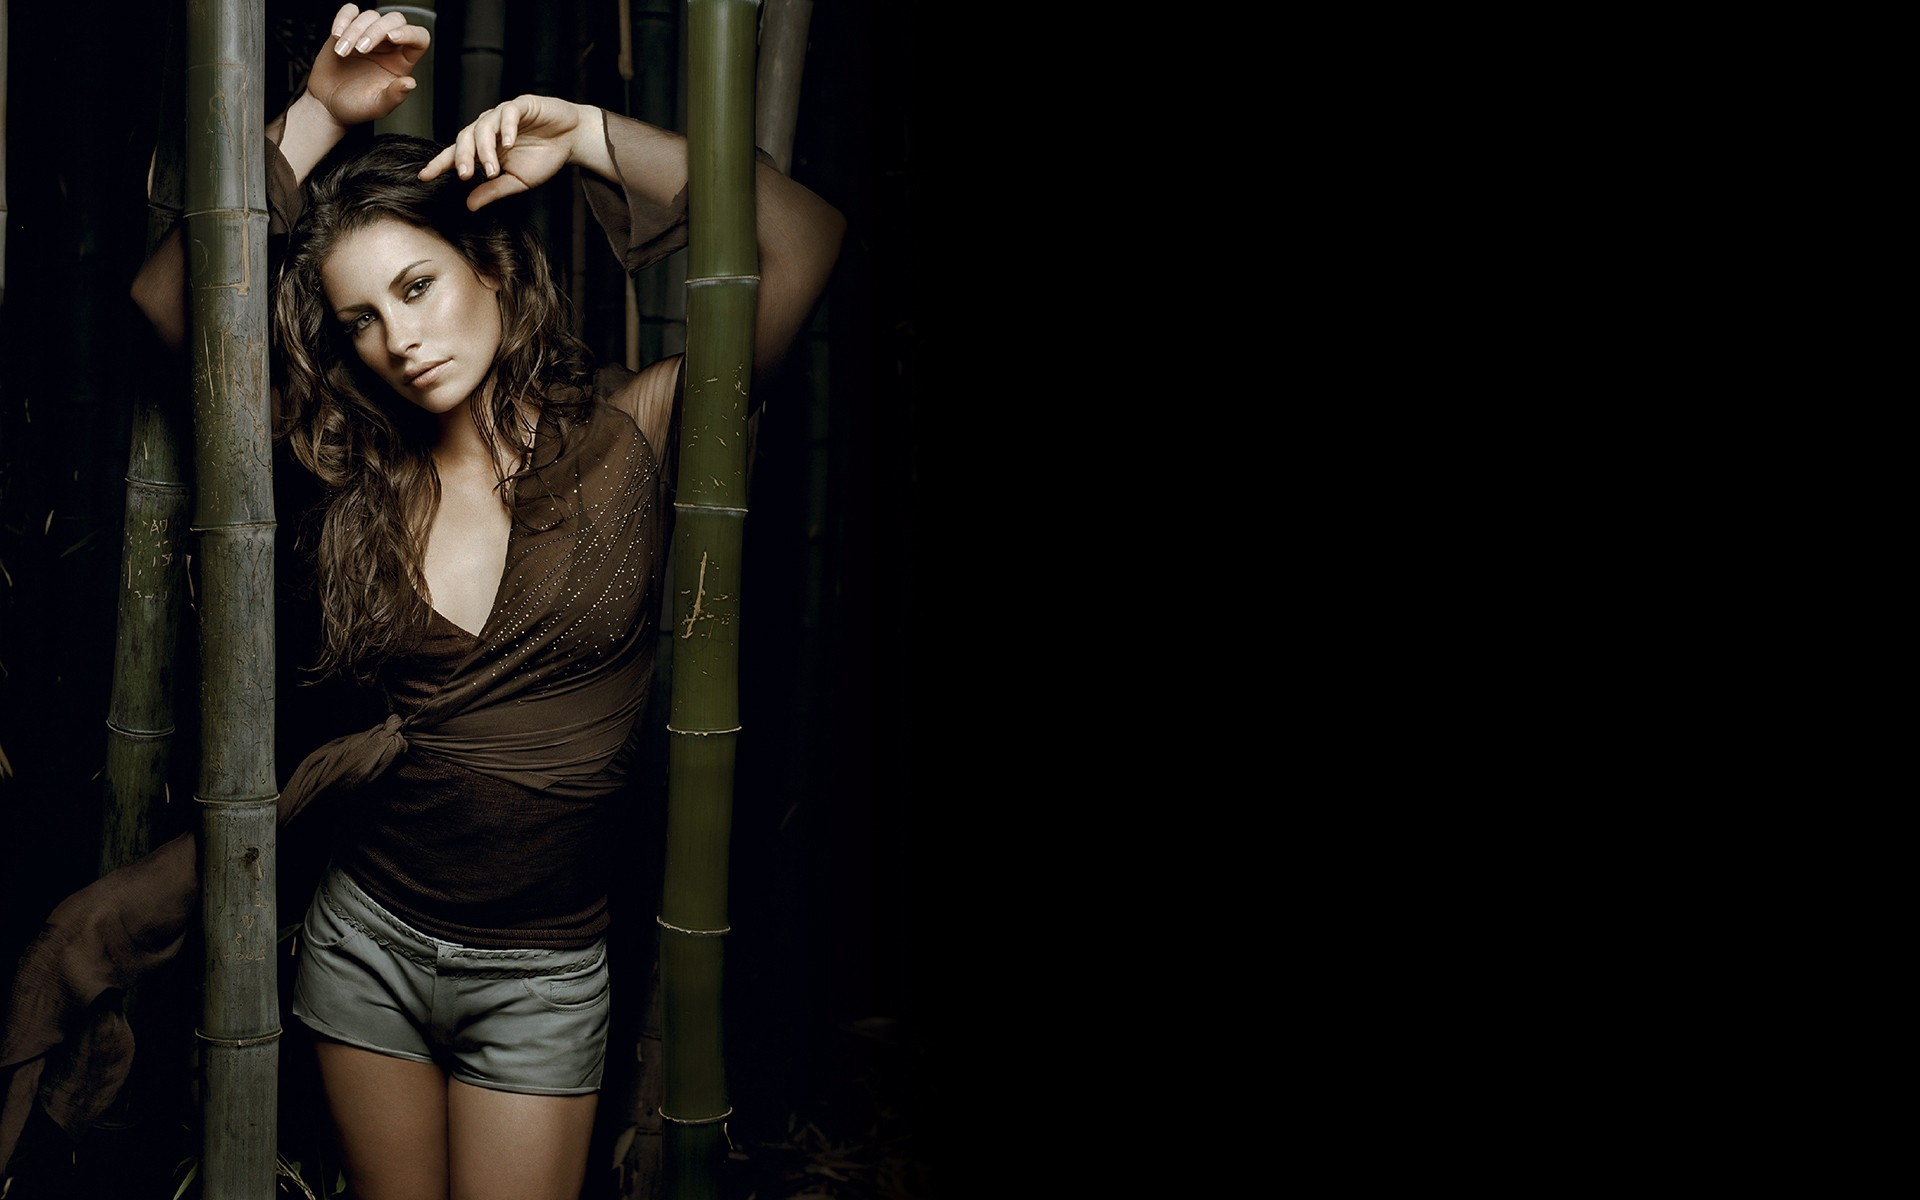 Evangeline Lilly Hobbit Wallpaper Evangeline lilly wallpaper 1920x1200